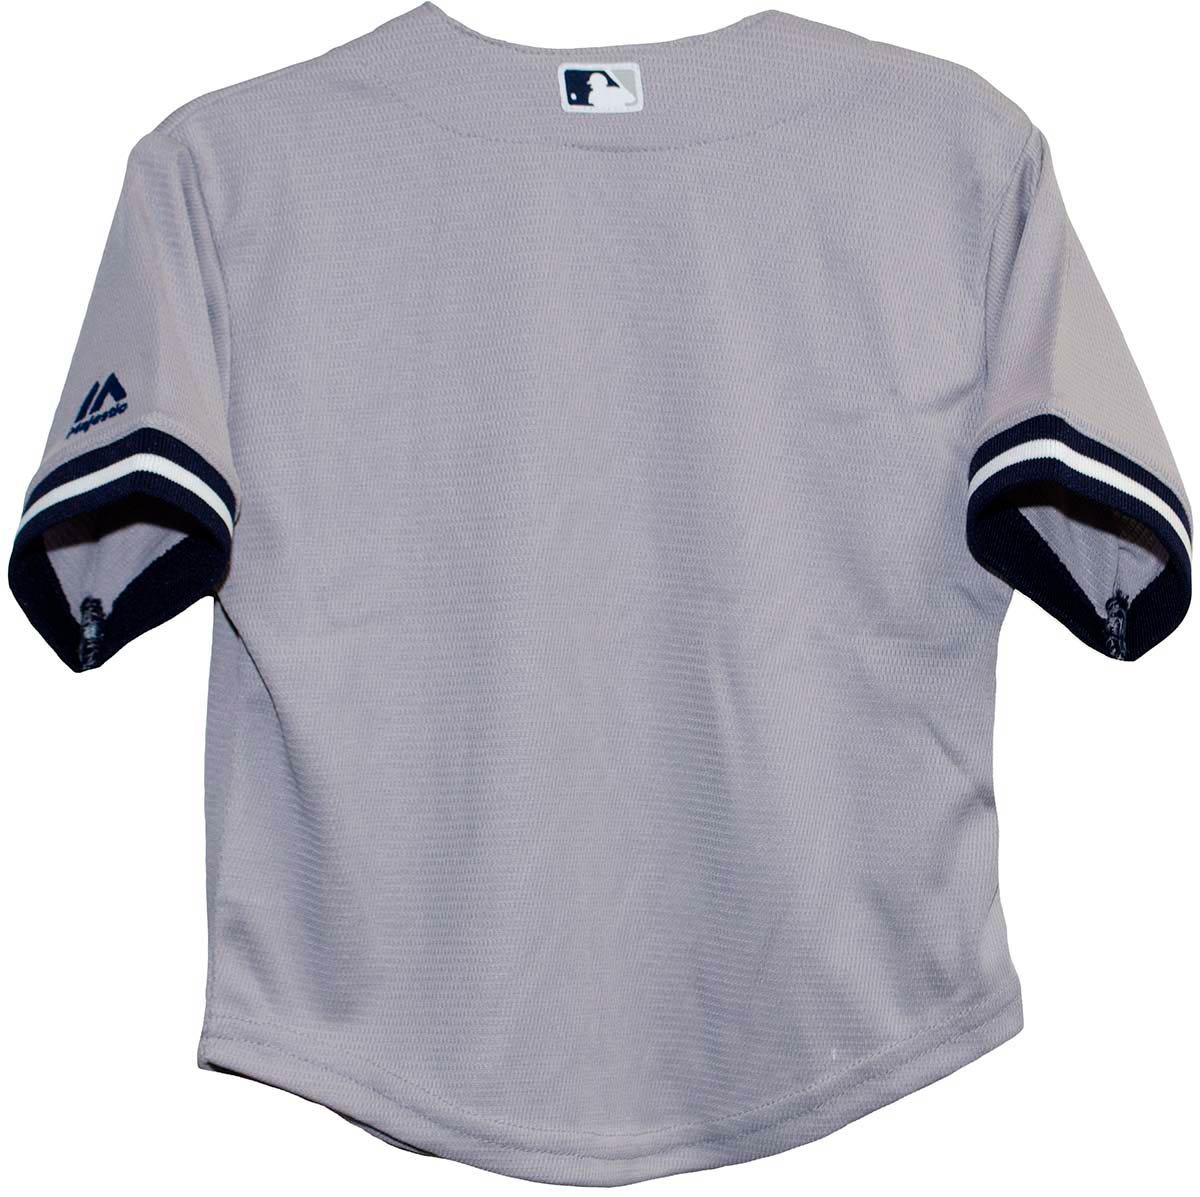 new product 7ec12 5f2f9 Personalized Yankee Jersey For Toddlers | RLDM